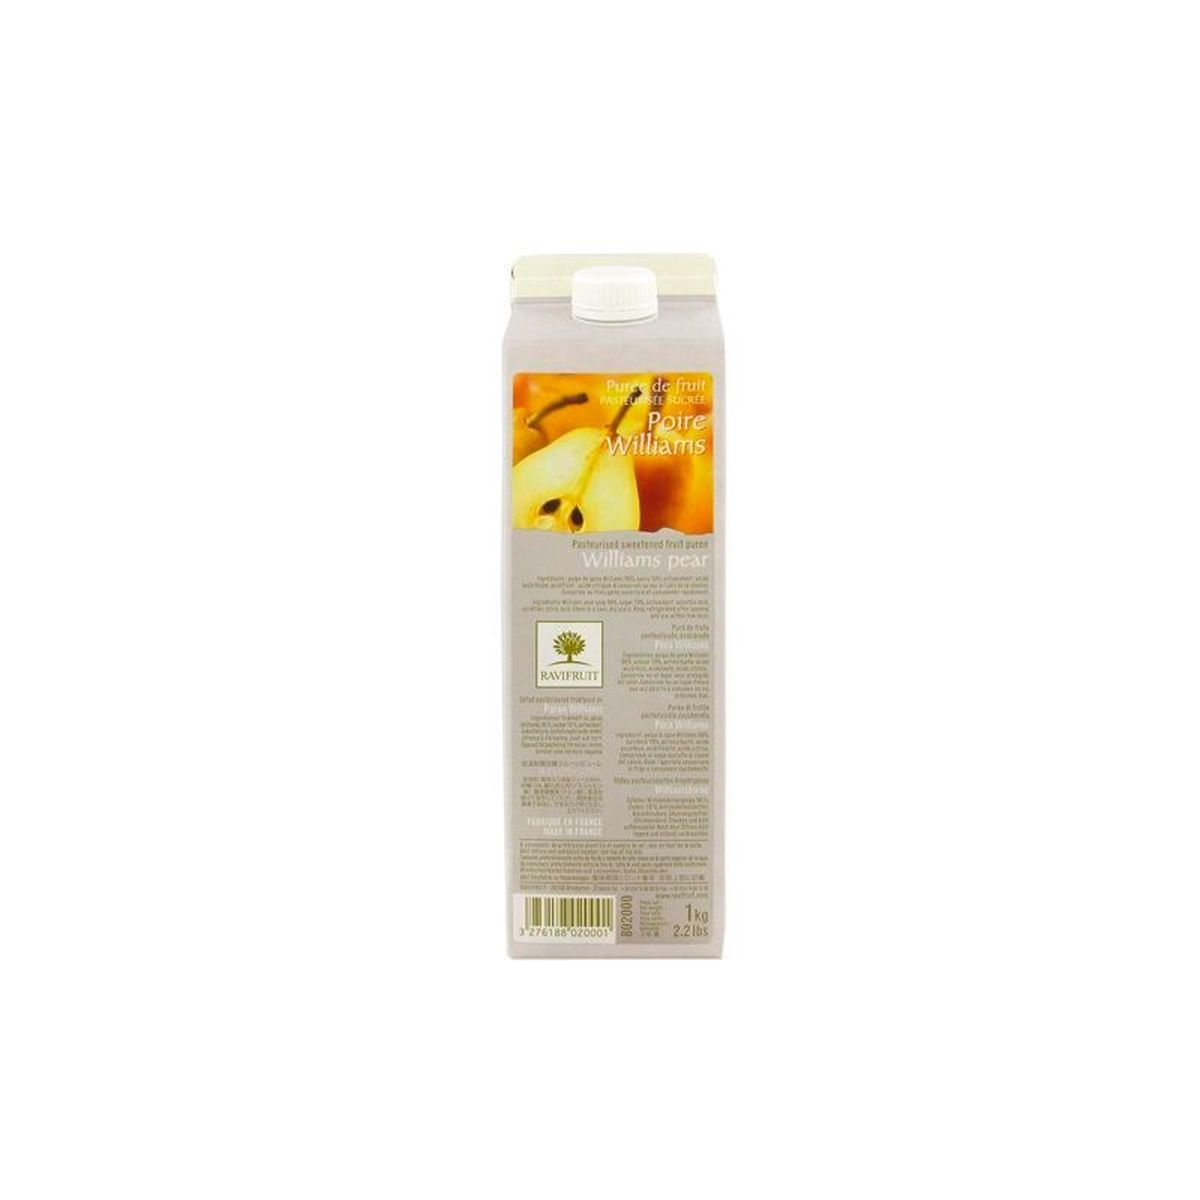 PUREE DE POIRE WILLIAMS 1000ML - RAVIFRUIT